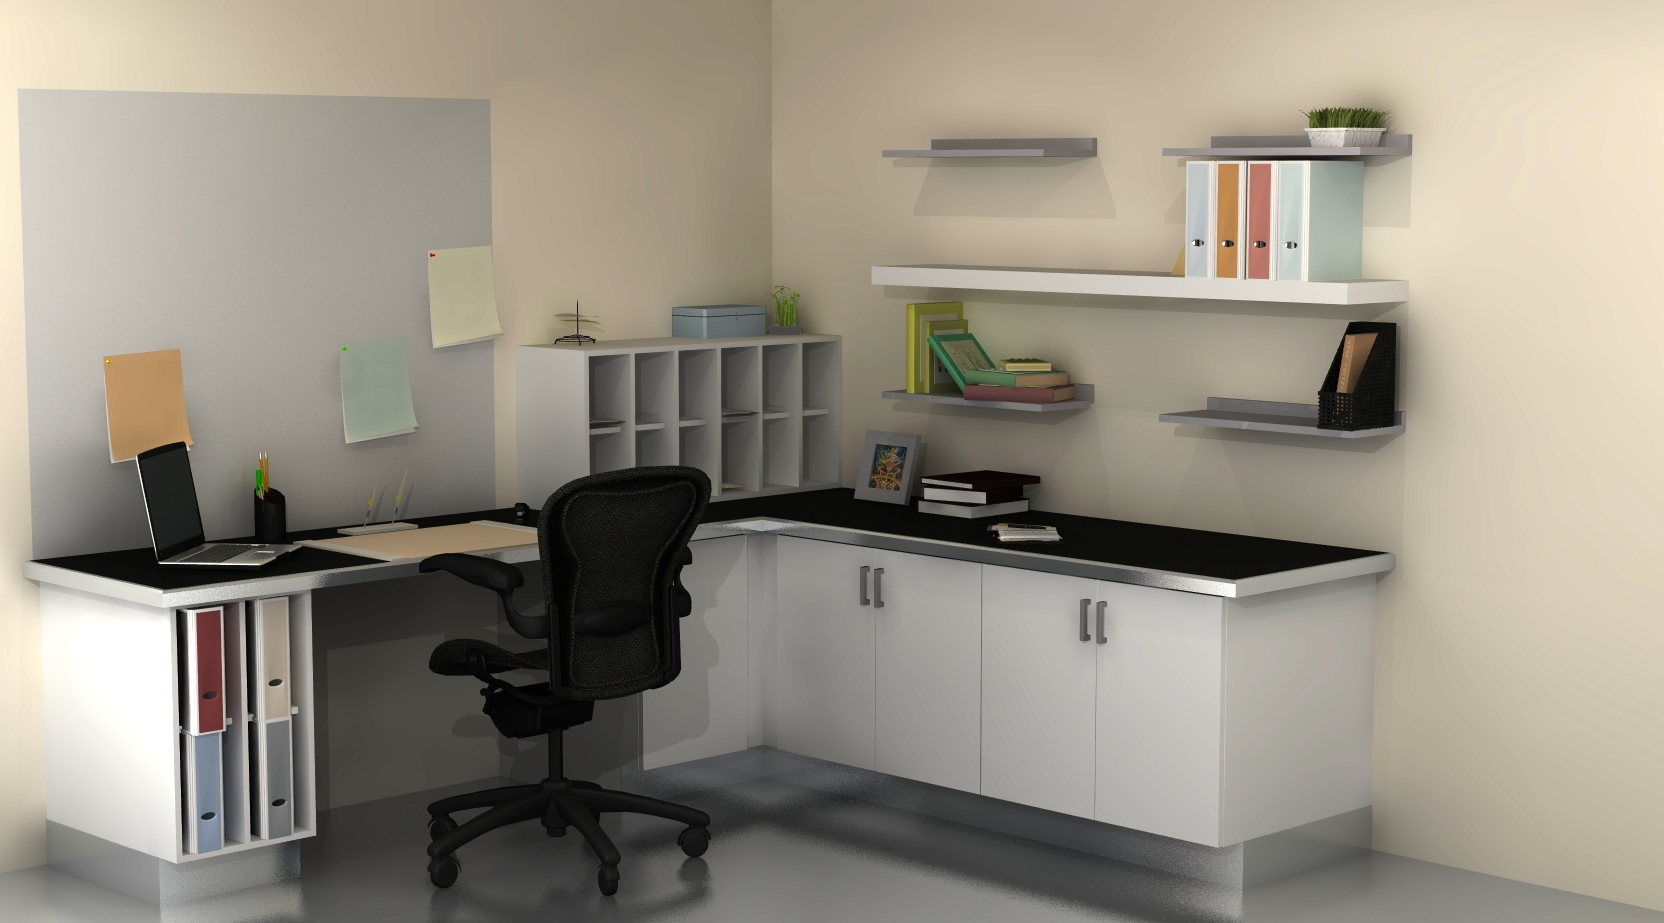 Kitchen Office Useful Spaces A Home Office With Ikea Cabinets